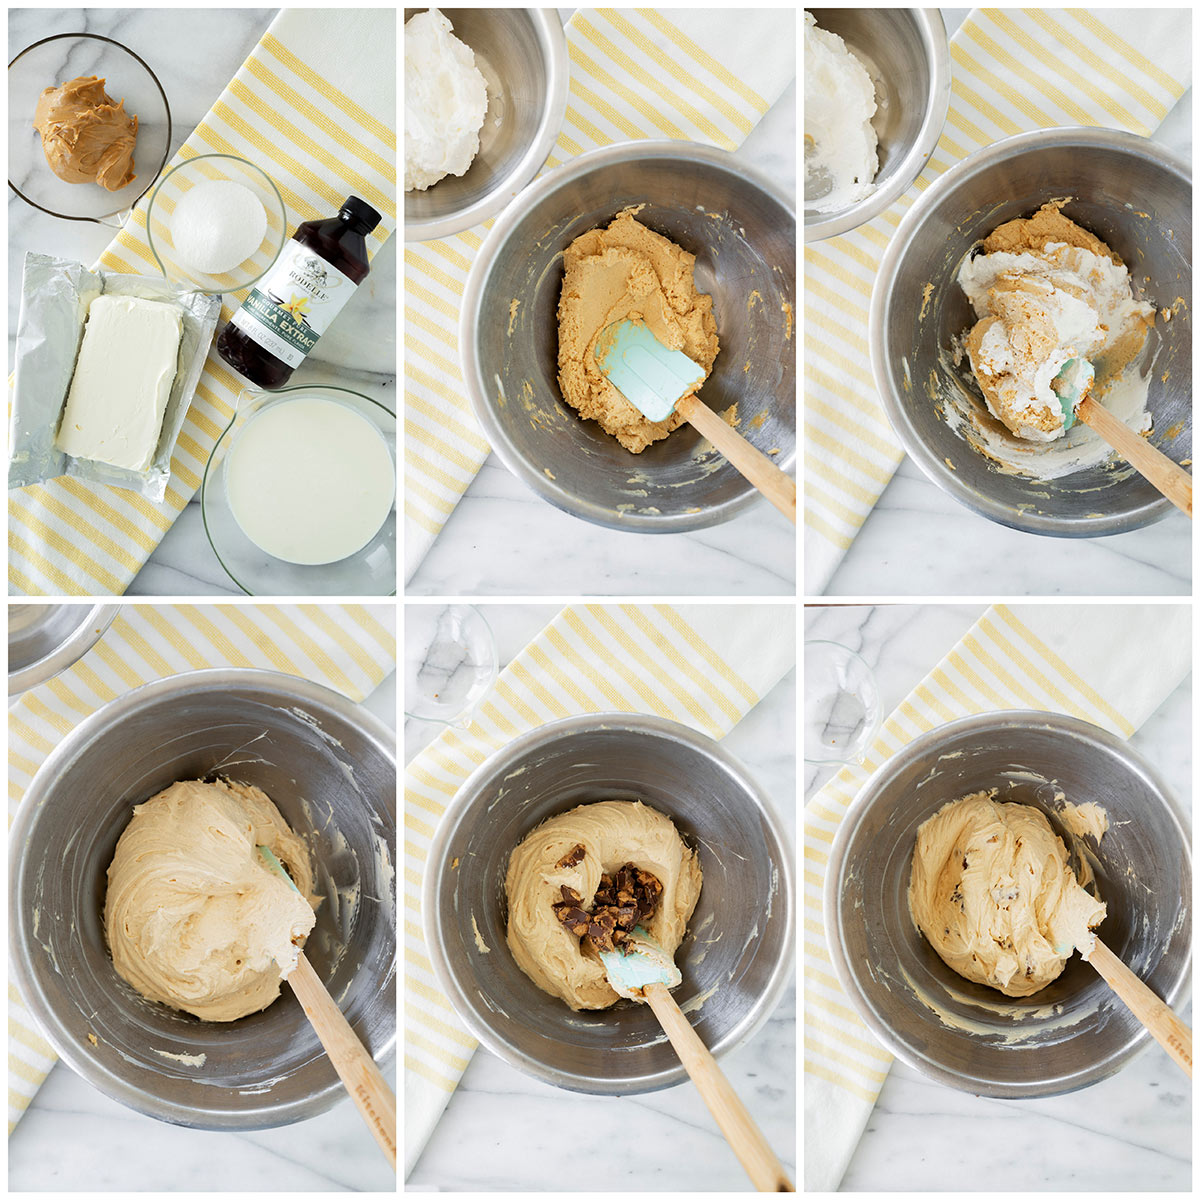 6 step by step photos of making the peanut butter cheesecake batter